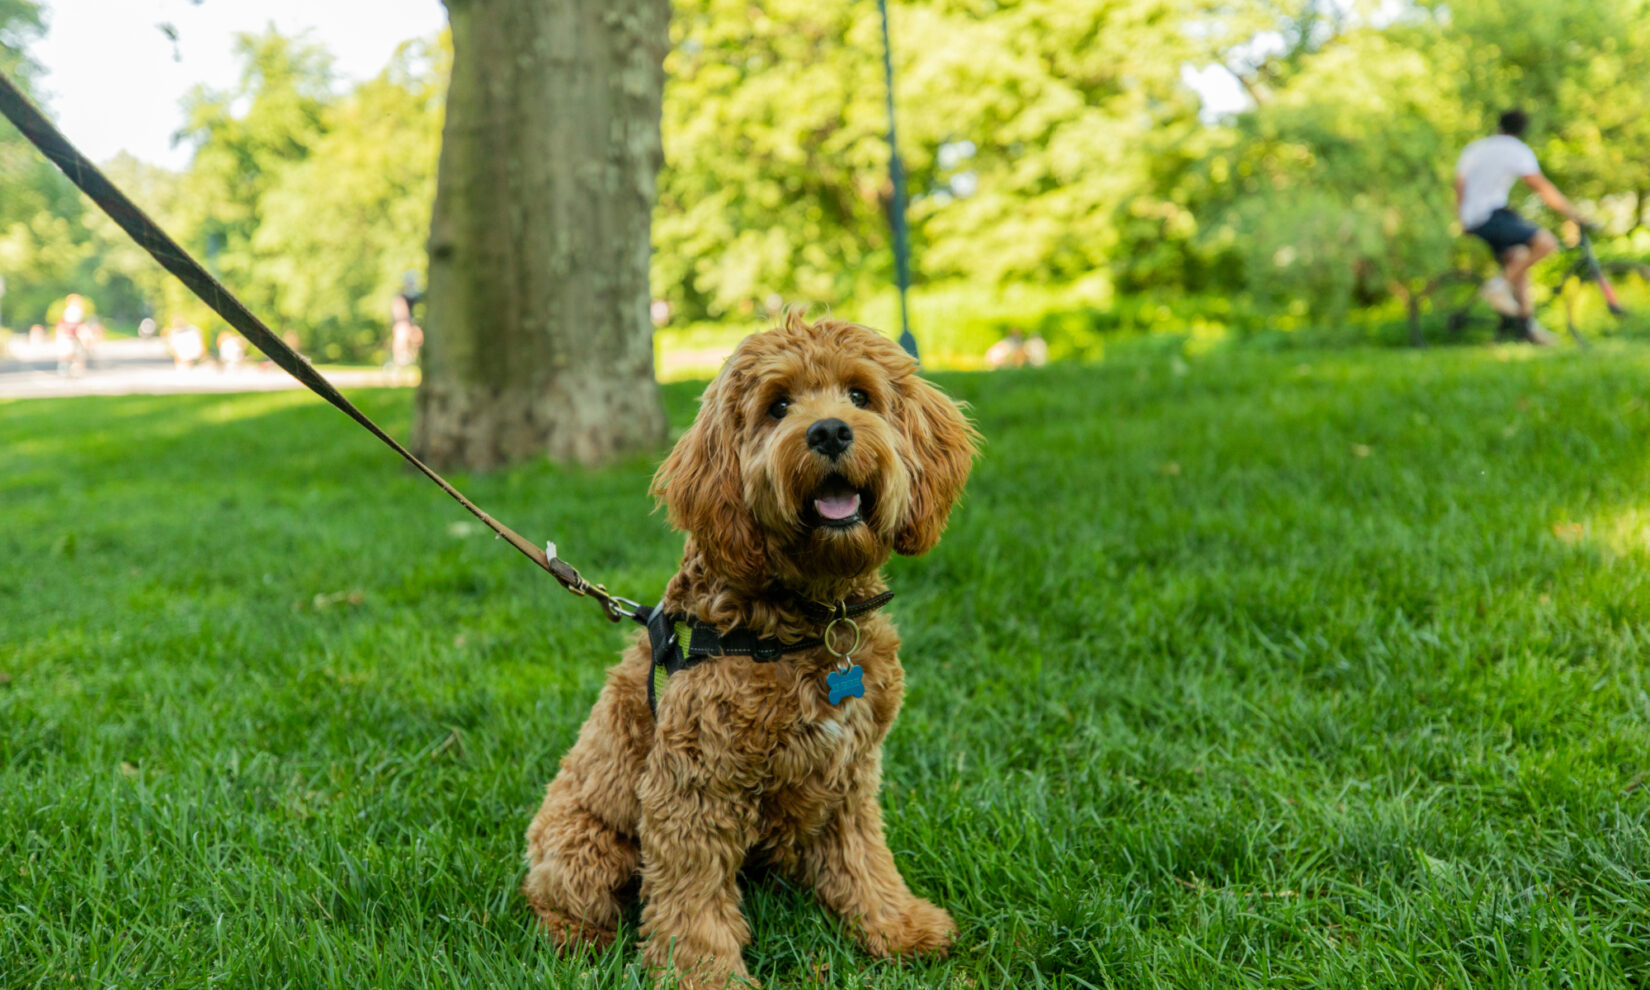 A leashed dog enjoys the shade of a Park tree.